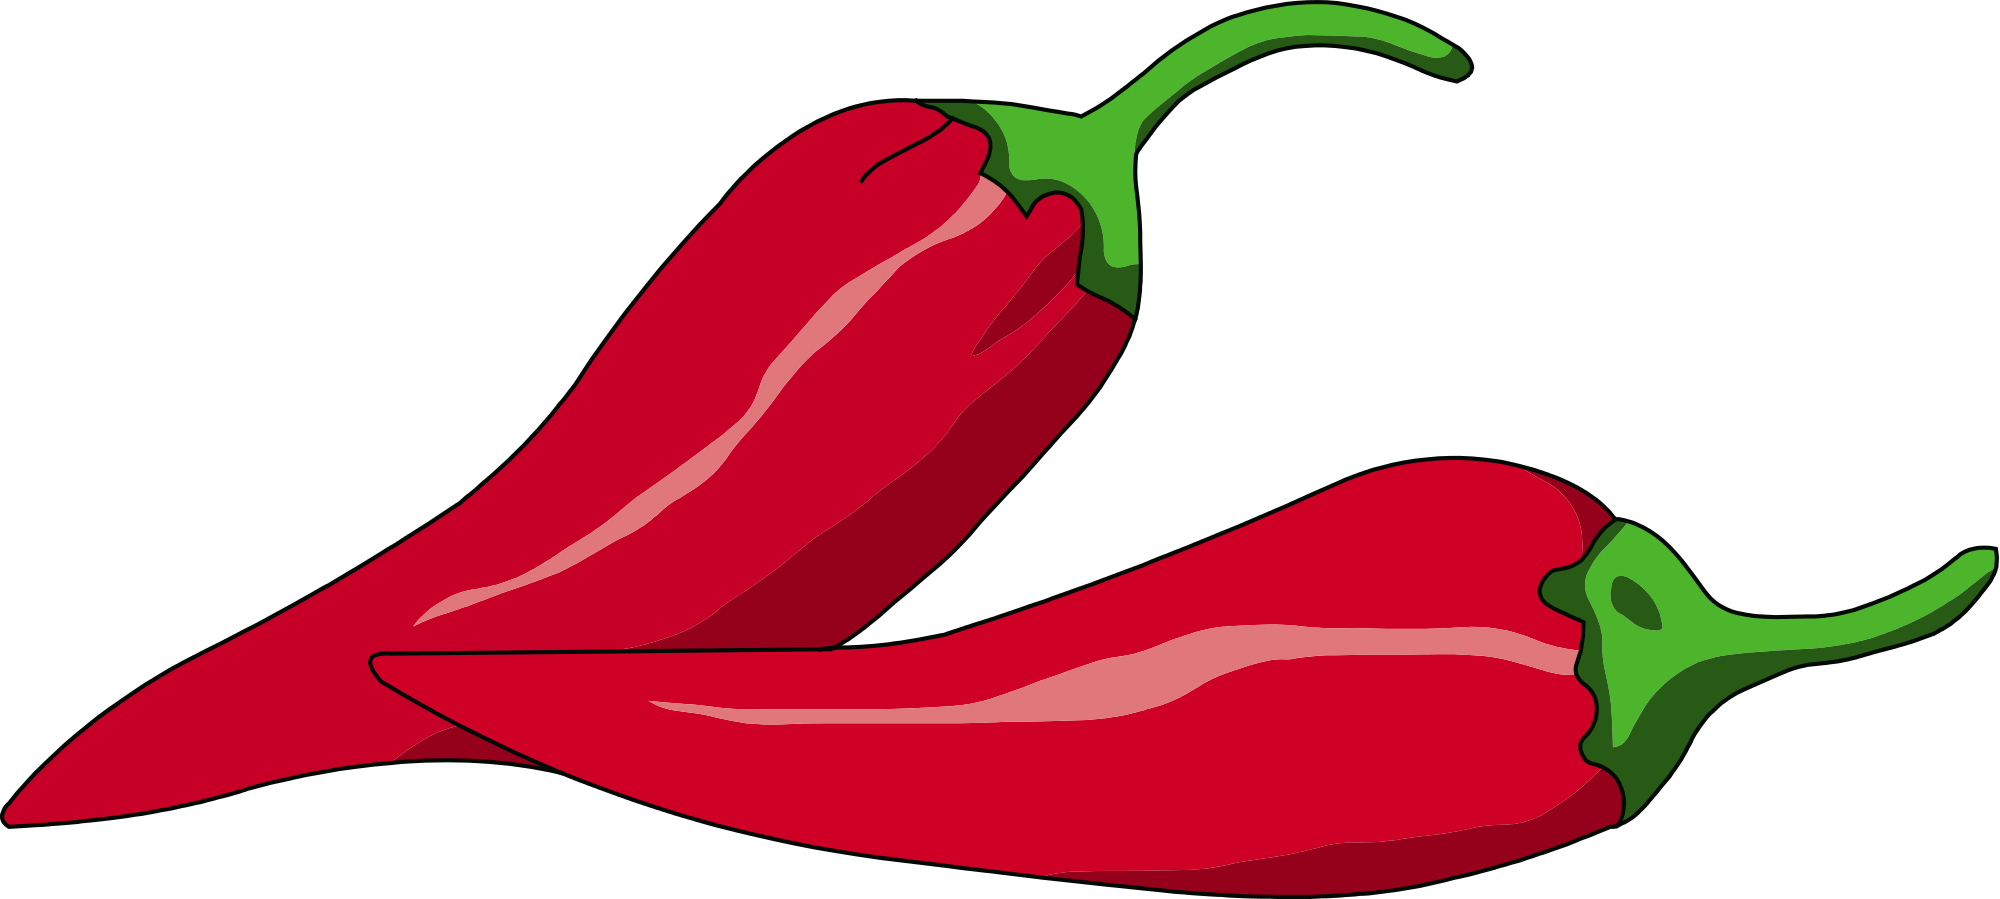 Chili drawing svg. File peperoncino pepper fra